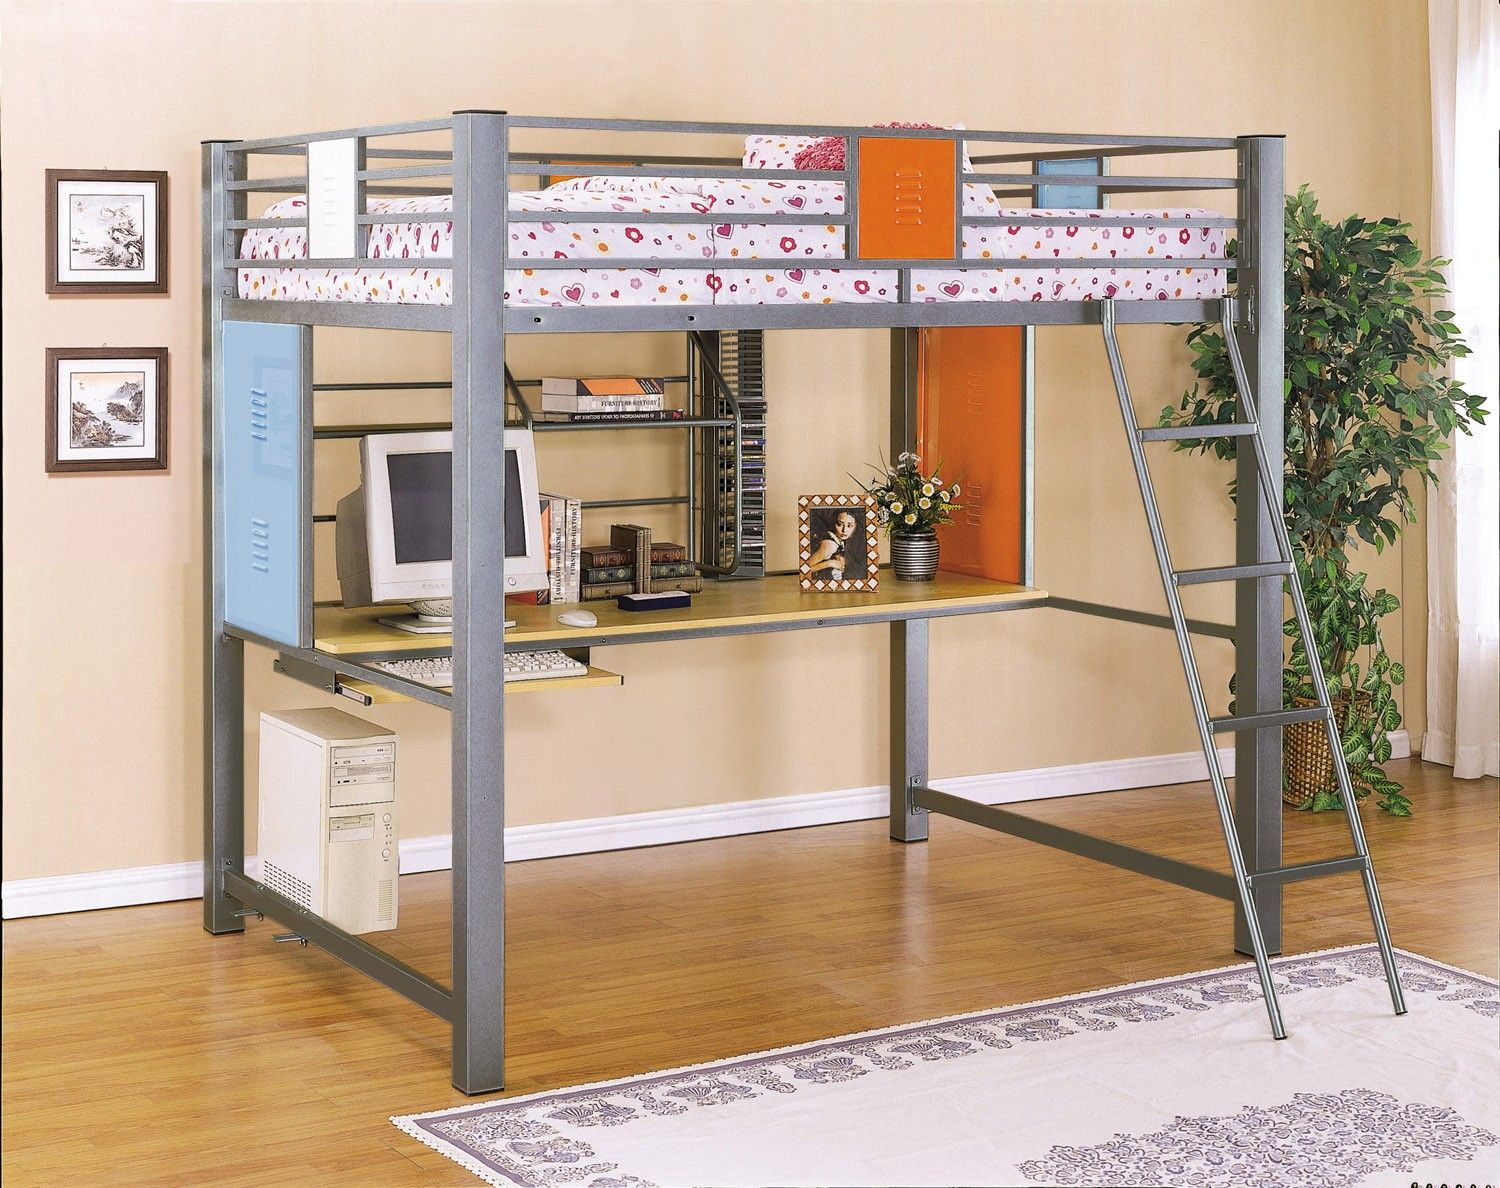 Bedroom loft for teens - Powell Teen Trends Full Loft Study Bunk Bed Price 1 016 00